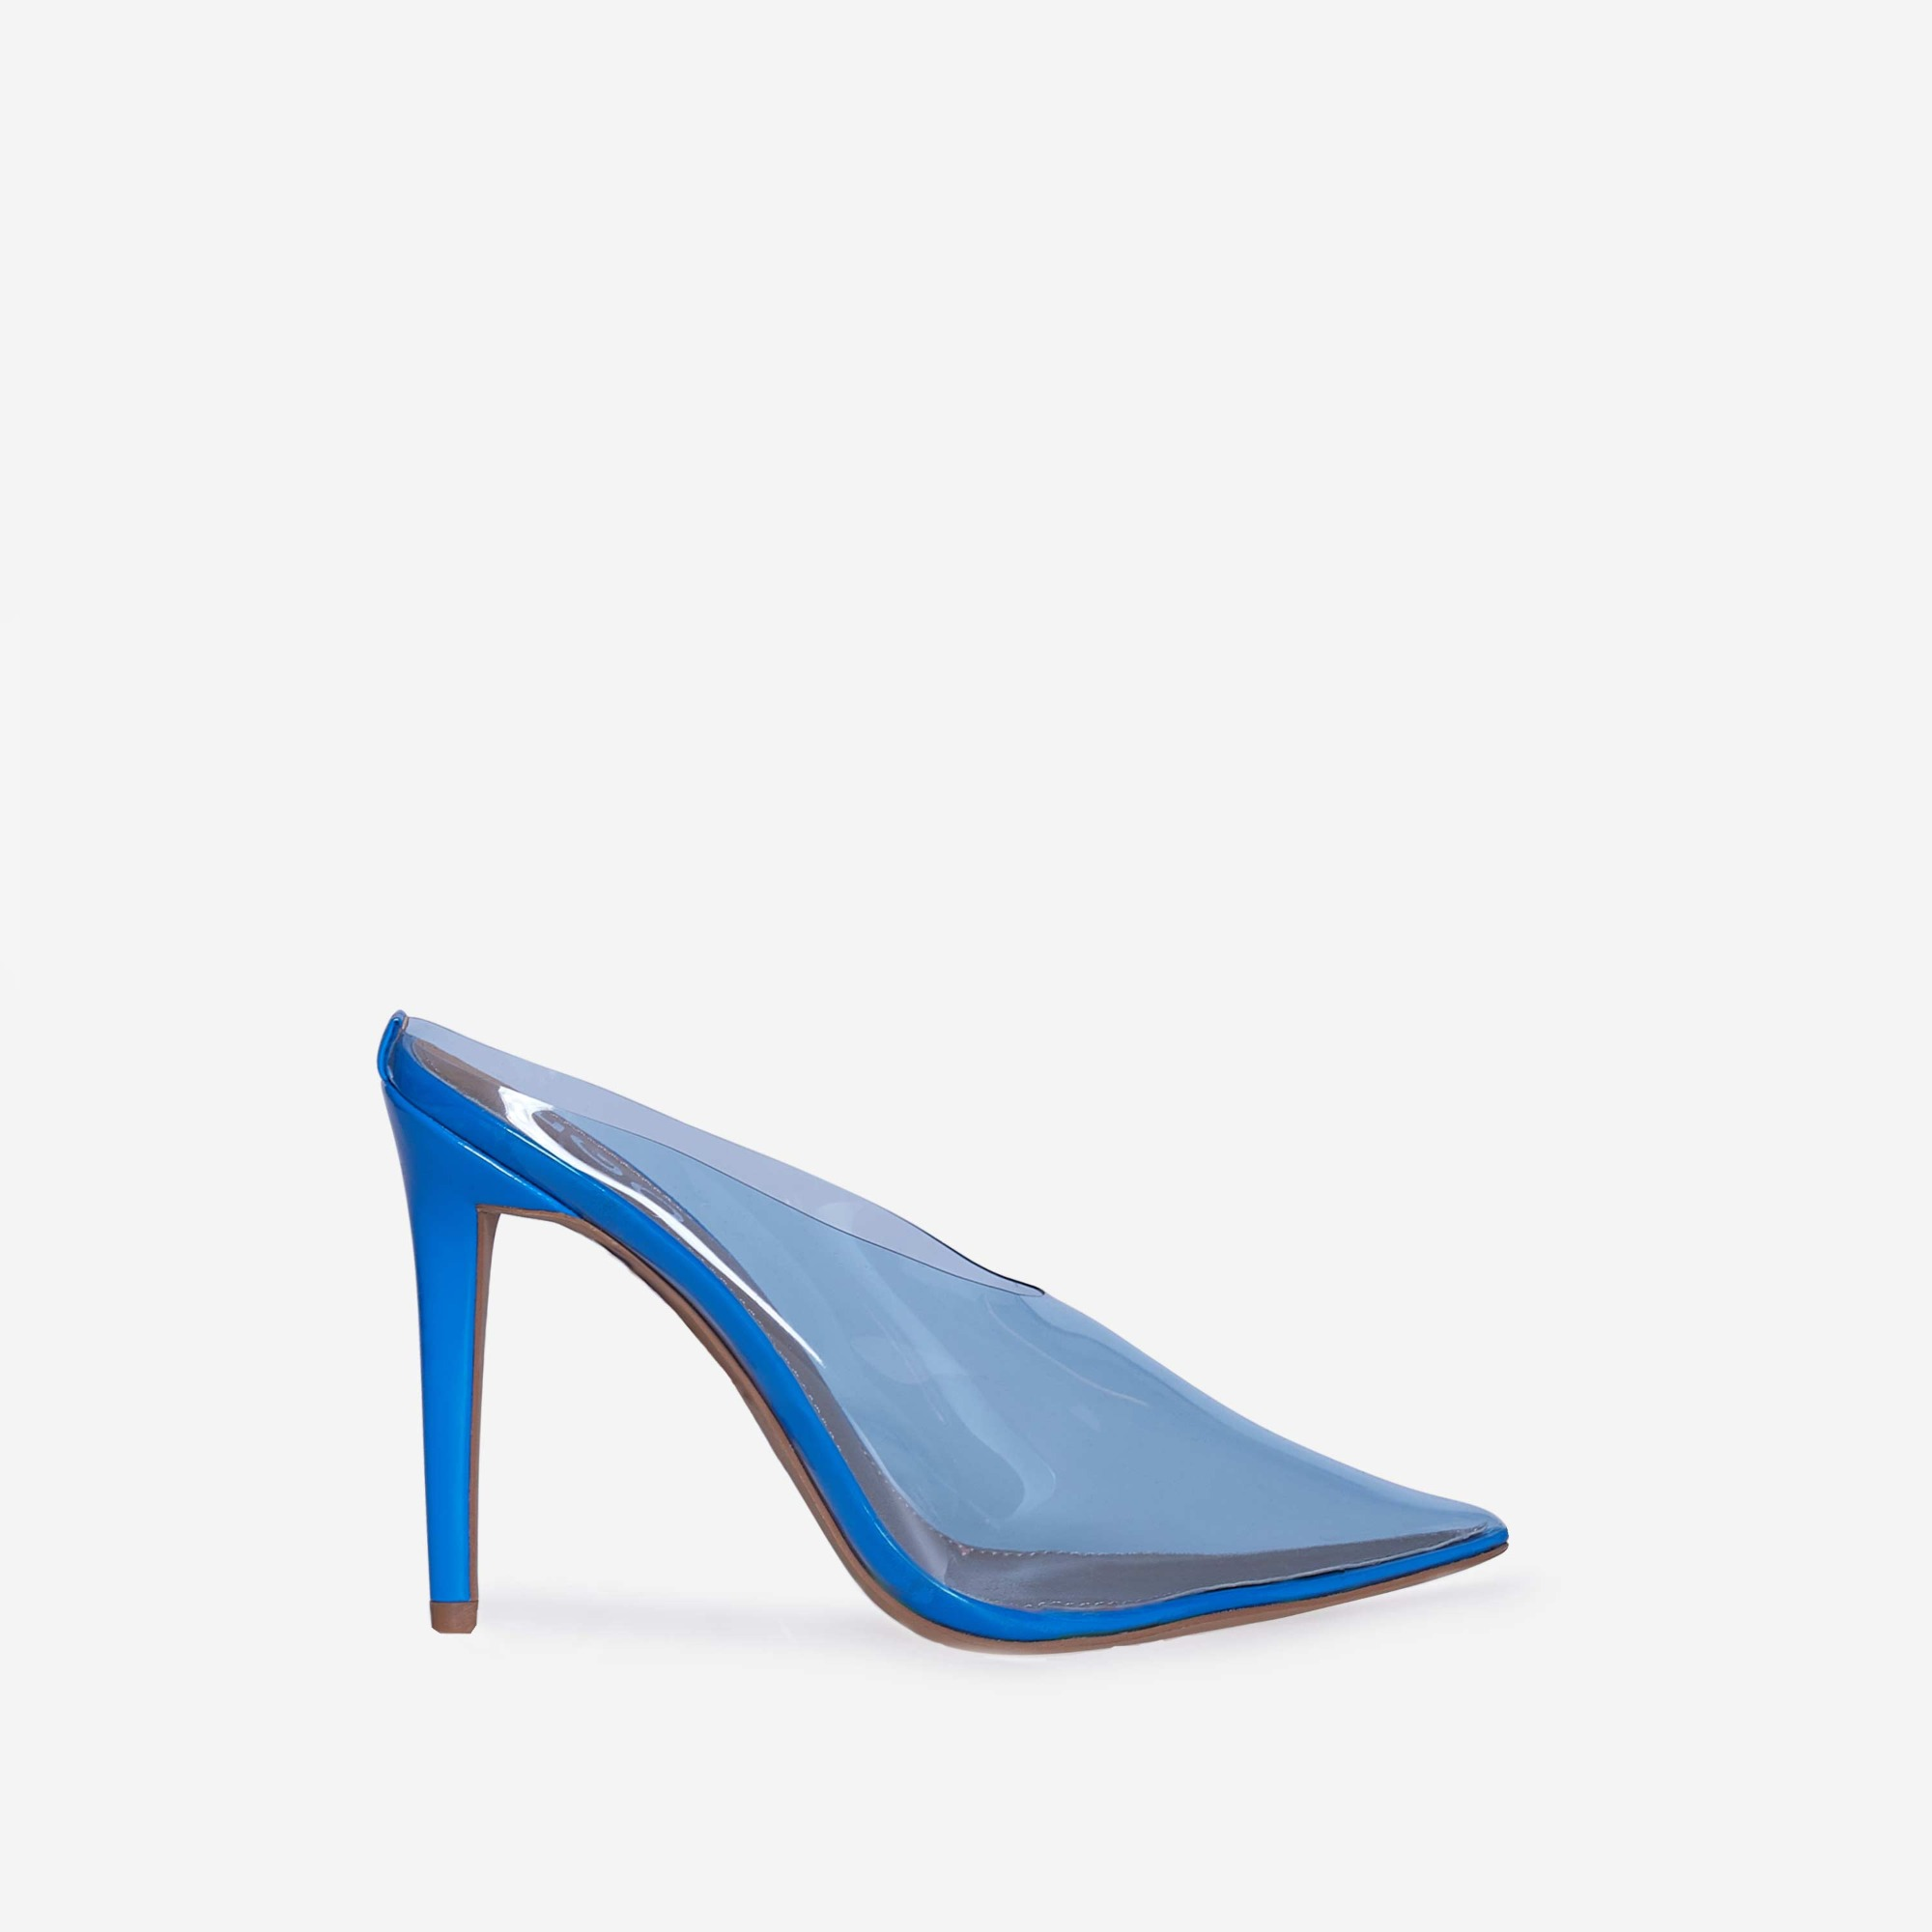 Raquel Closed Toe Perspex Mule Heel In Blue Patent